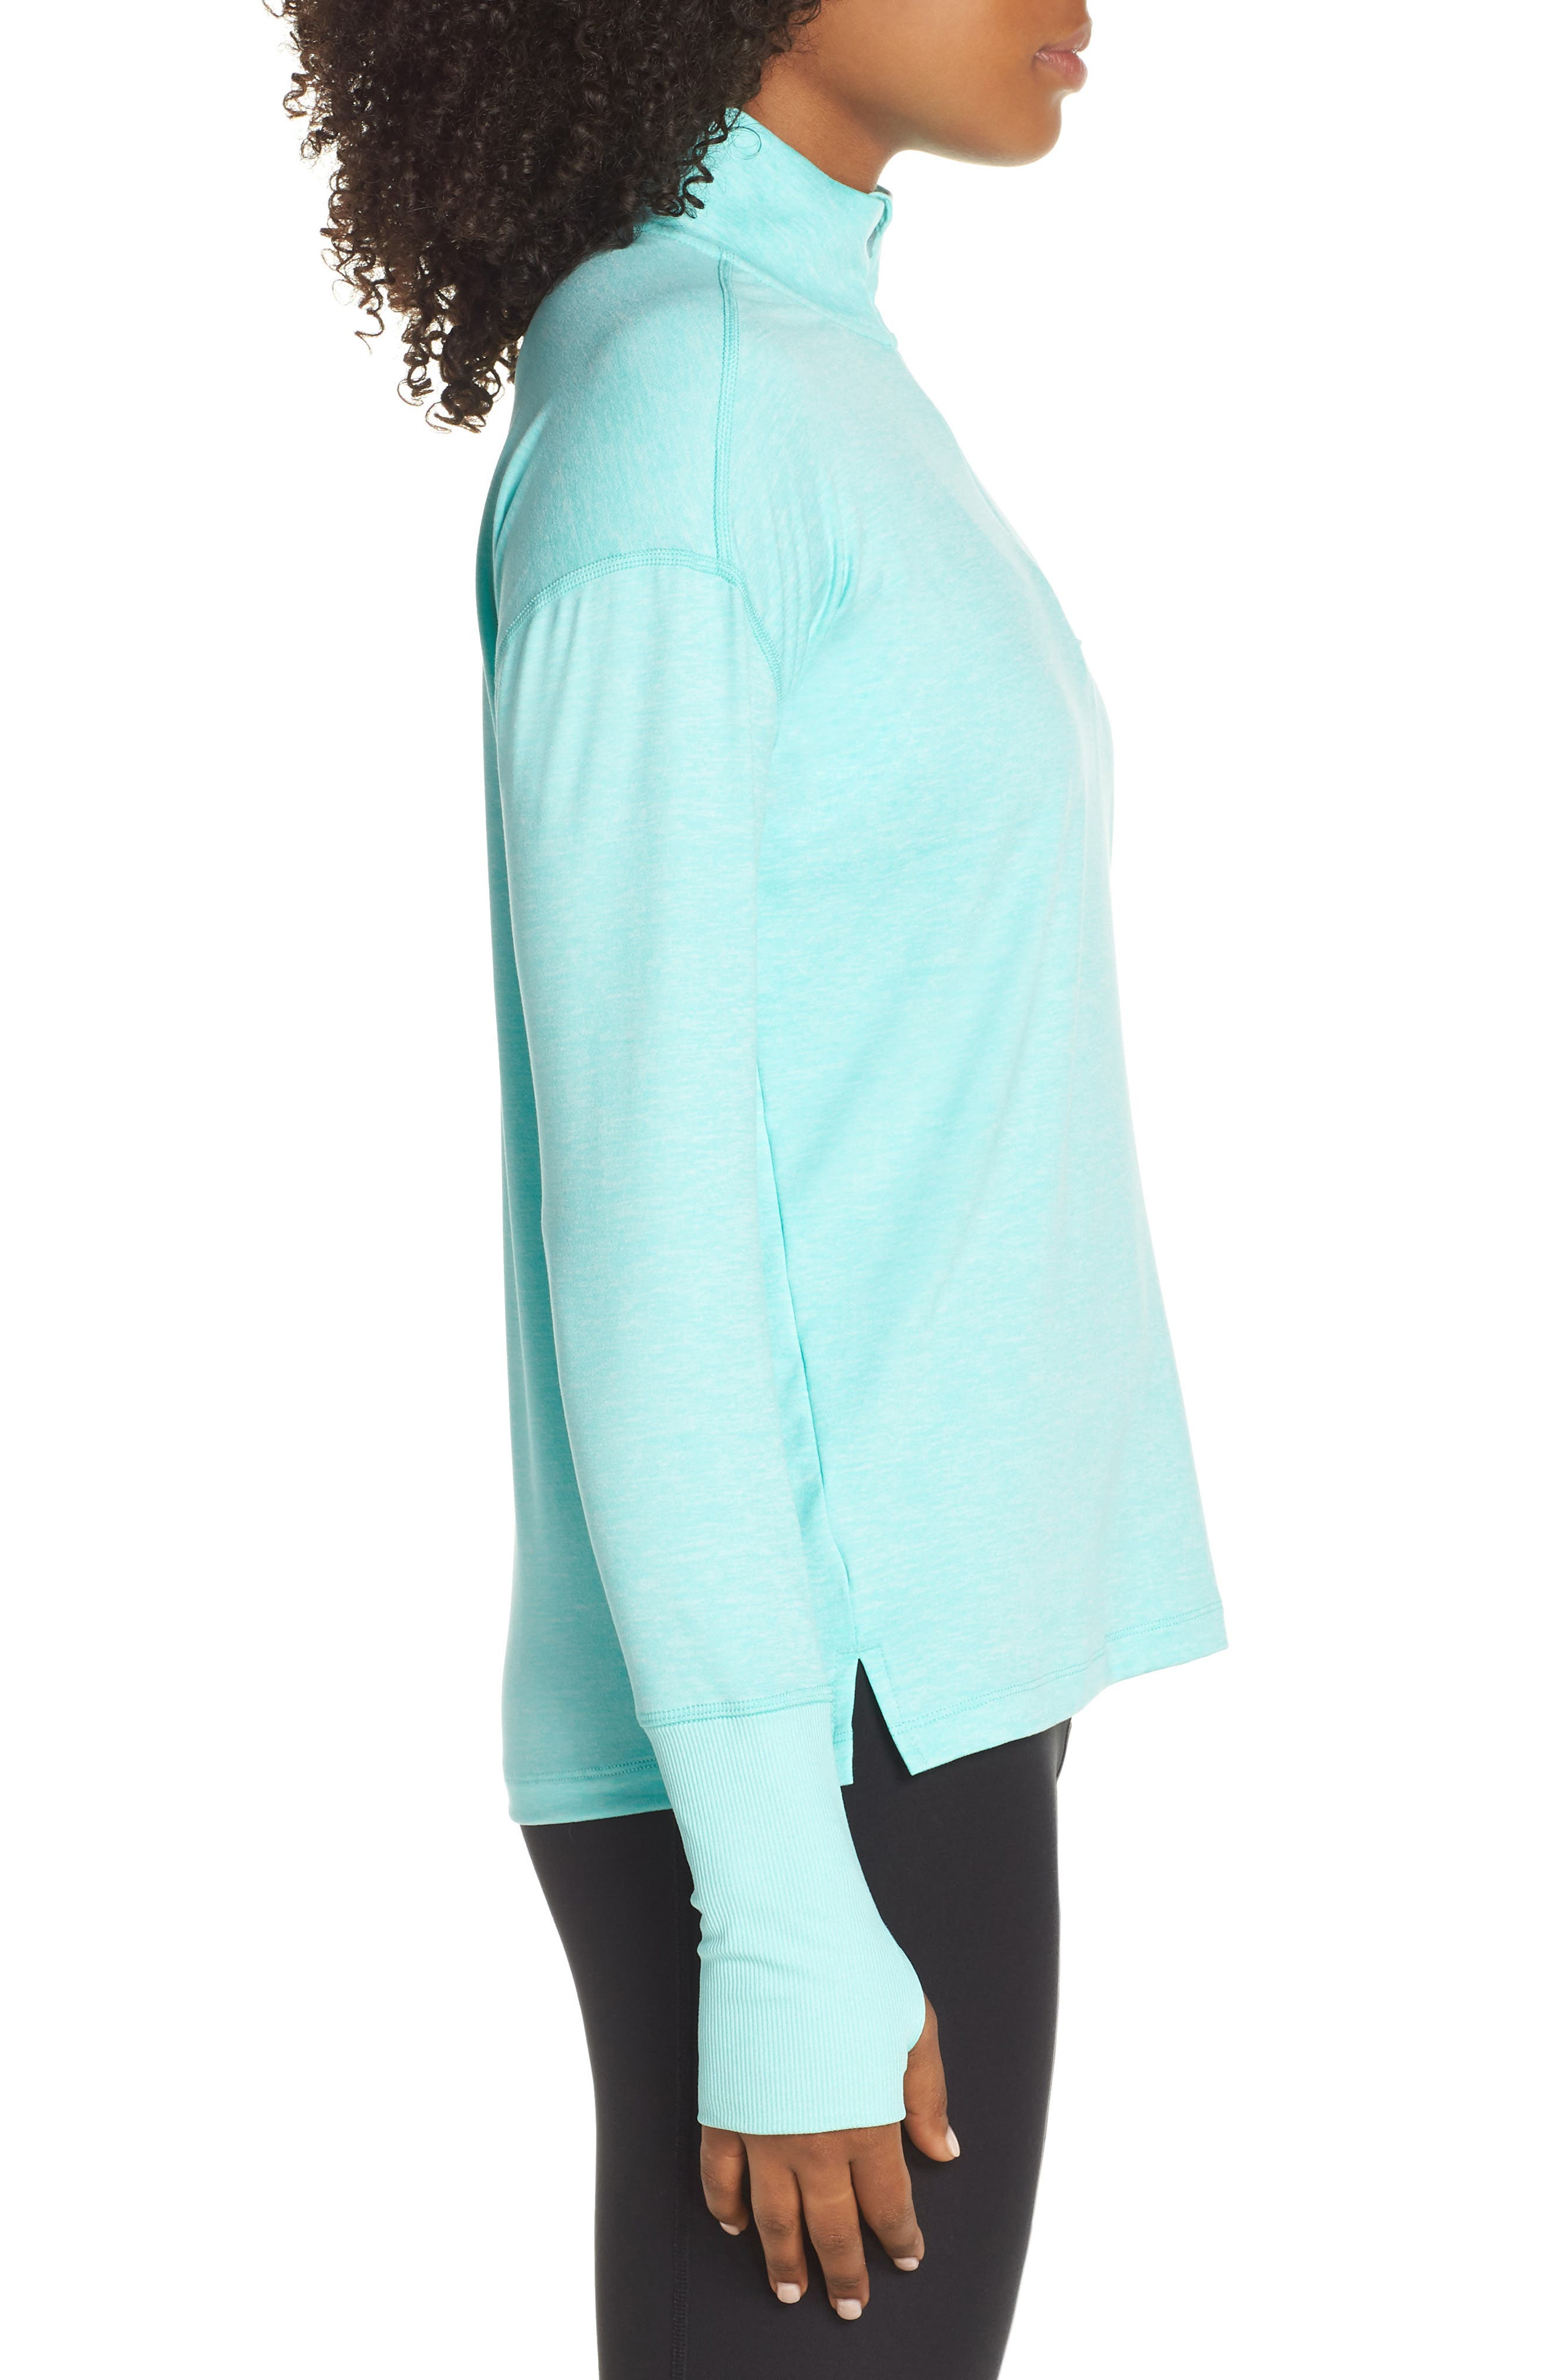 Element Long-Sleeve Running Top,                             Alternate thumbnail 3, color,                             TROPICAL TWIST/ TEAL TINT